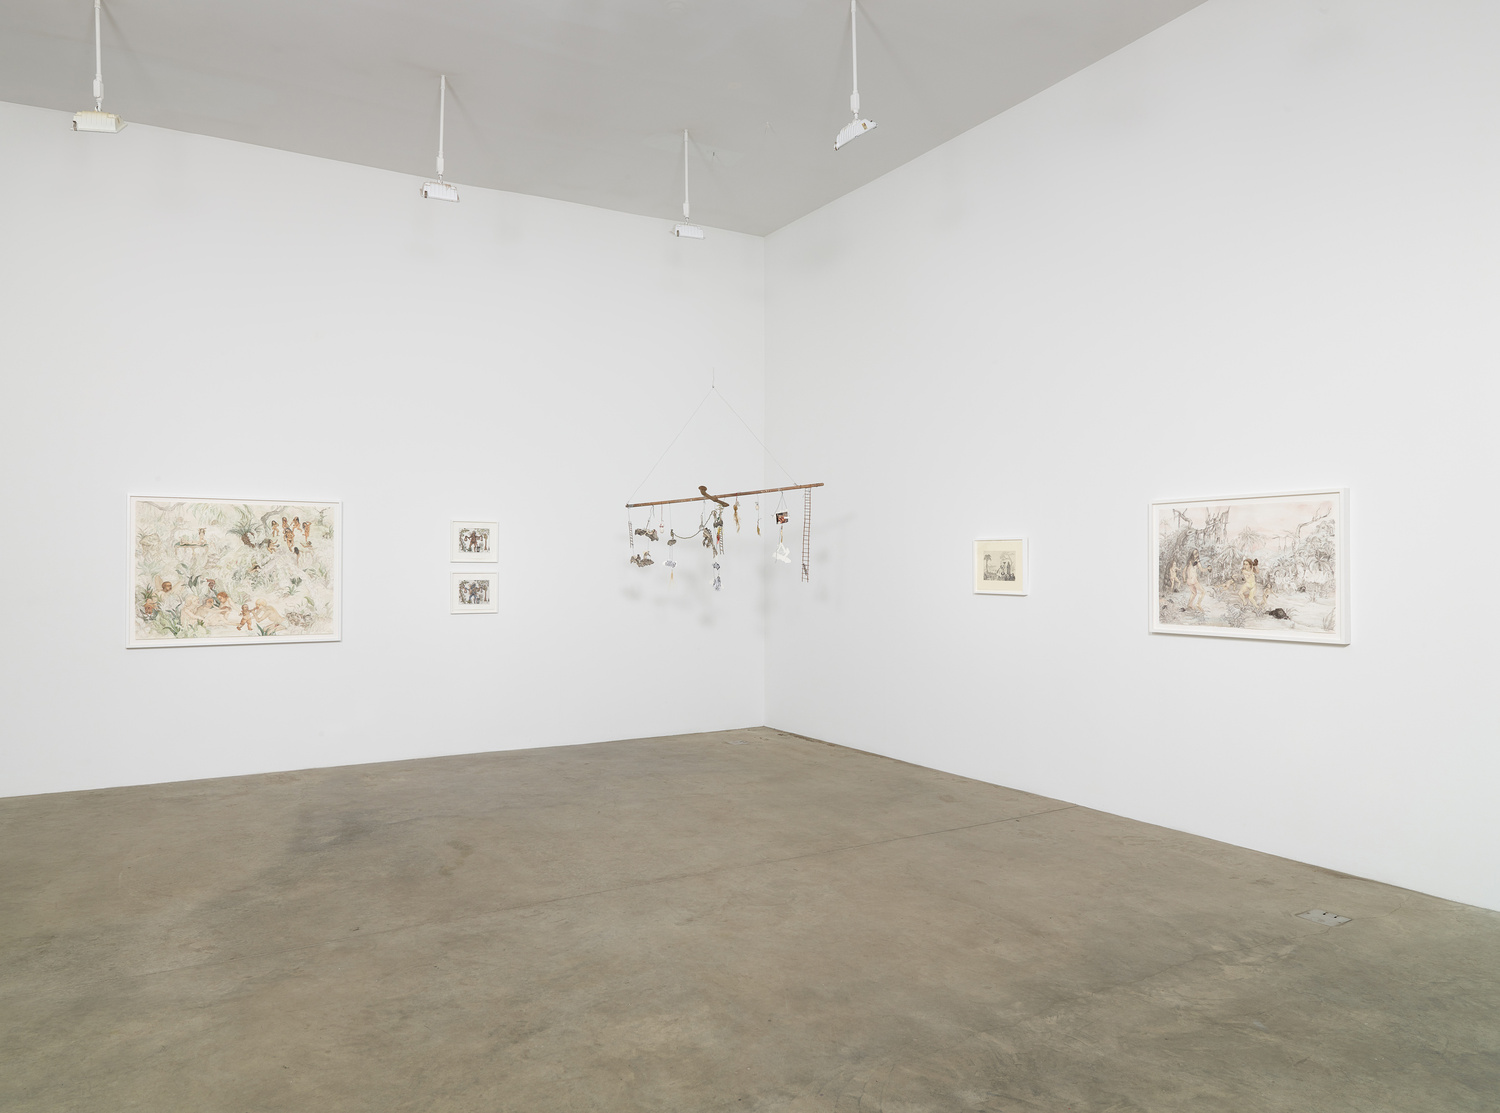 BodilyImaginaries_KoenigAndClinton_2015_Installation_View2_300DPI